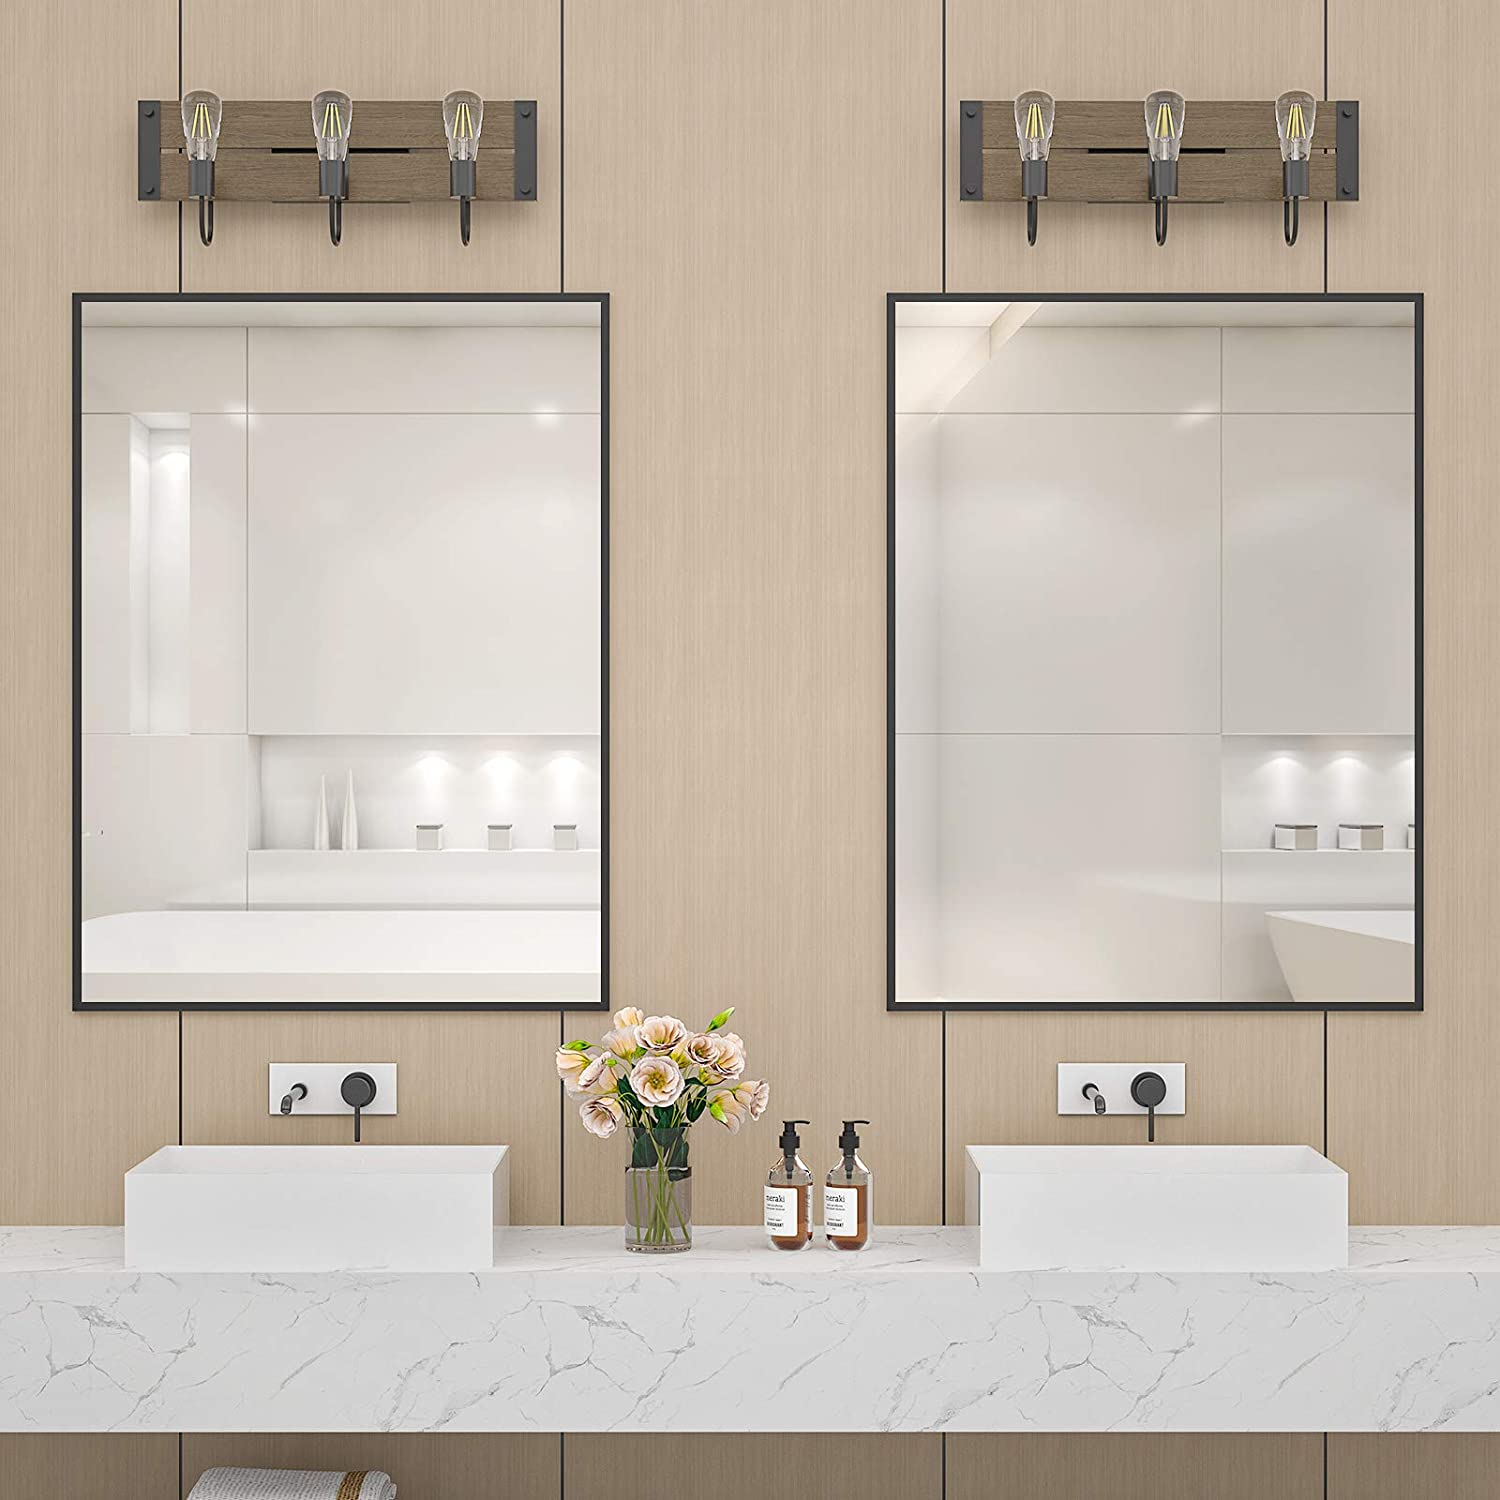 Buy Litymax 3 Light Wood Farmhouse Bathroom Vanity Lights Fixture Over Mirror Rustic Vanity Wall Sconce Vintage Wall Light With Faux Wood For Bathroom Dressing Table Living Room St64 Bulbs Included Online In